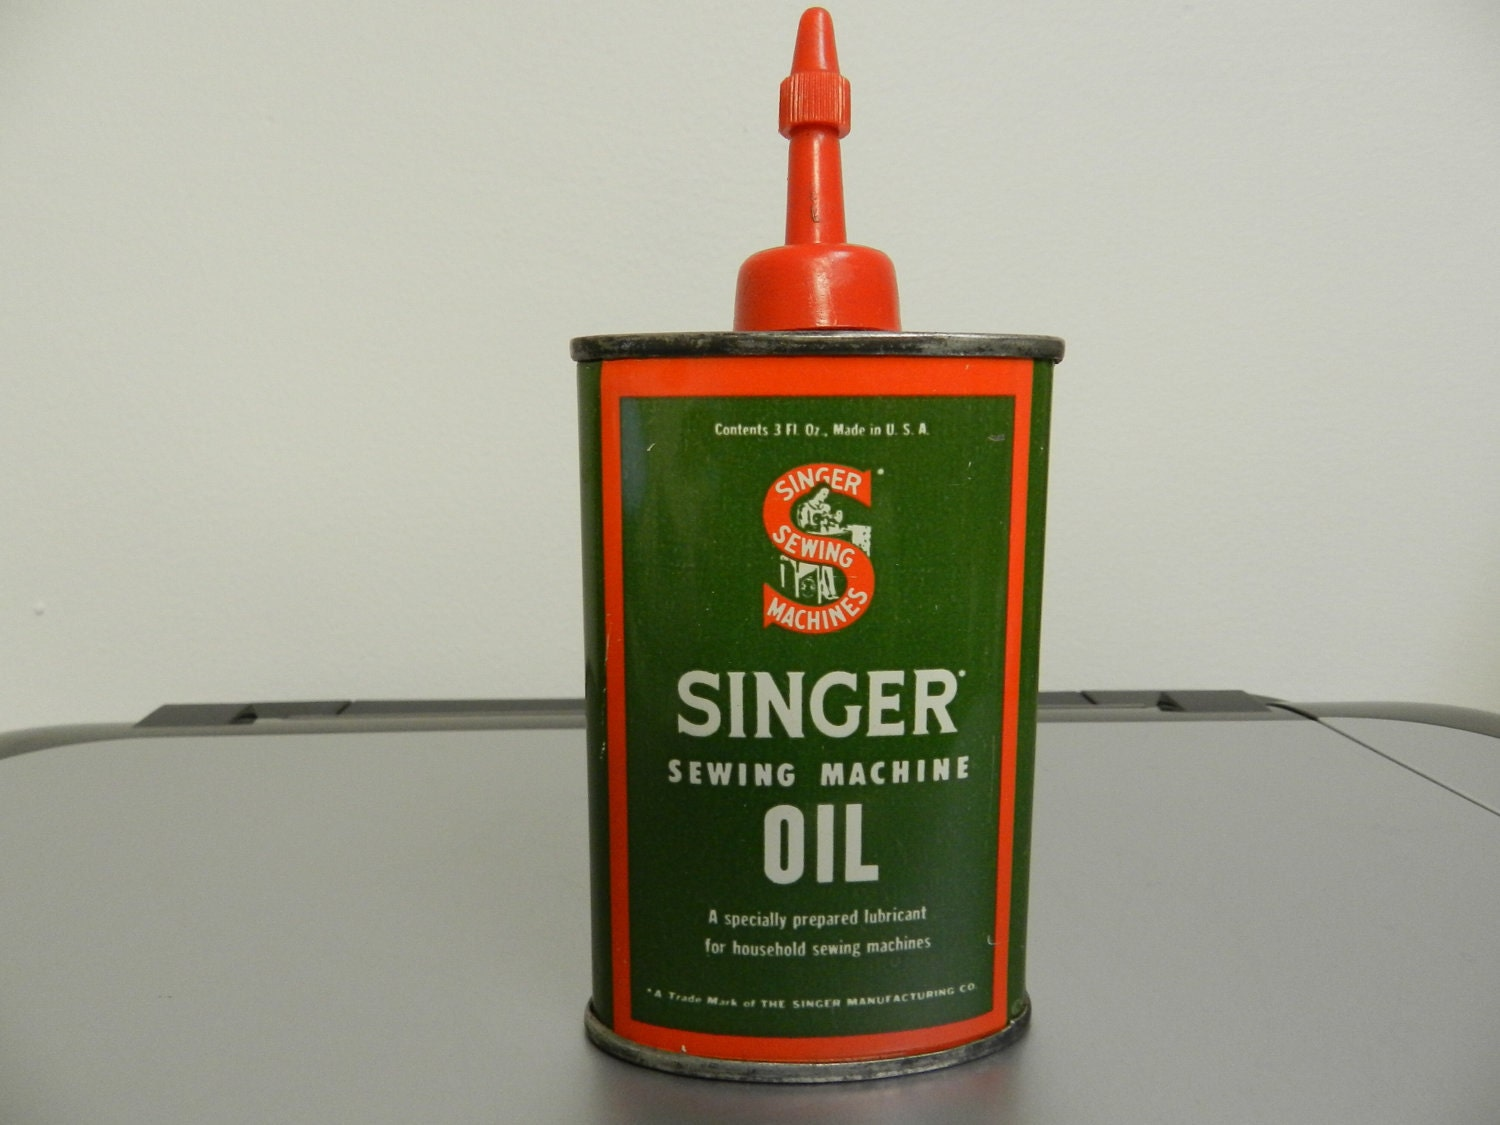 Where Can You Buy Sewing Machine Oil